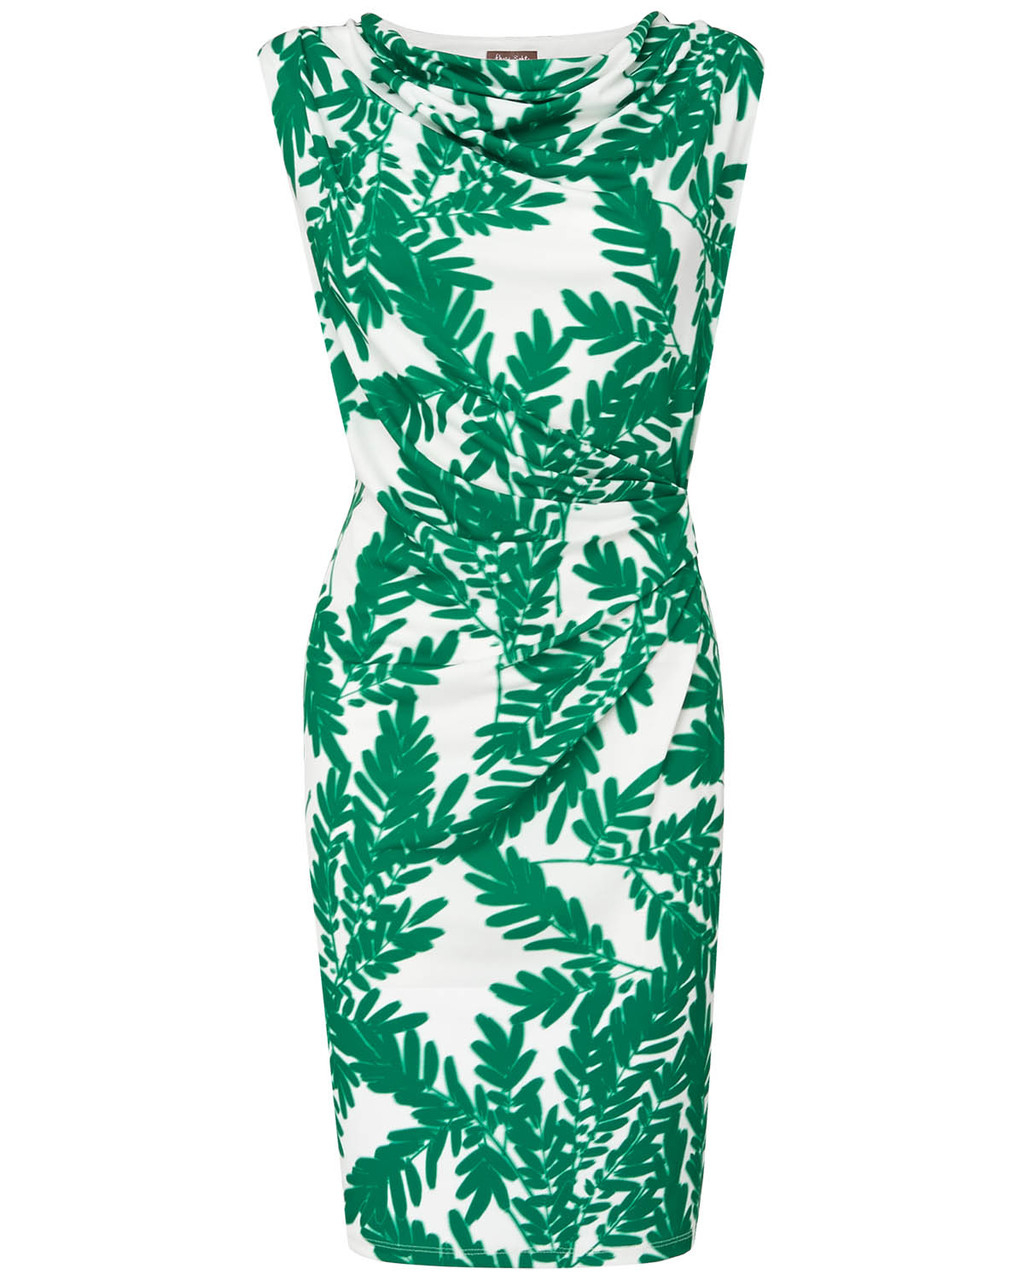 Fionn Fern Print Dress - style: shift; neckline: cowl/draped neck; sleeve style: sleeveless; predominant colour: emerald green; length: just above the knee; fit: body skimming; fibres: viscose/rayon - stretch; occasions: occasion; sleeve length: sleeveless; pattern type: fabric; pattern size: big & busy; pattern: florals; texture group: jersey - stretchy/drapey; season: s/s 2015; wardrobe: event